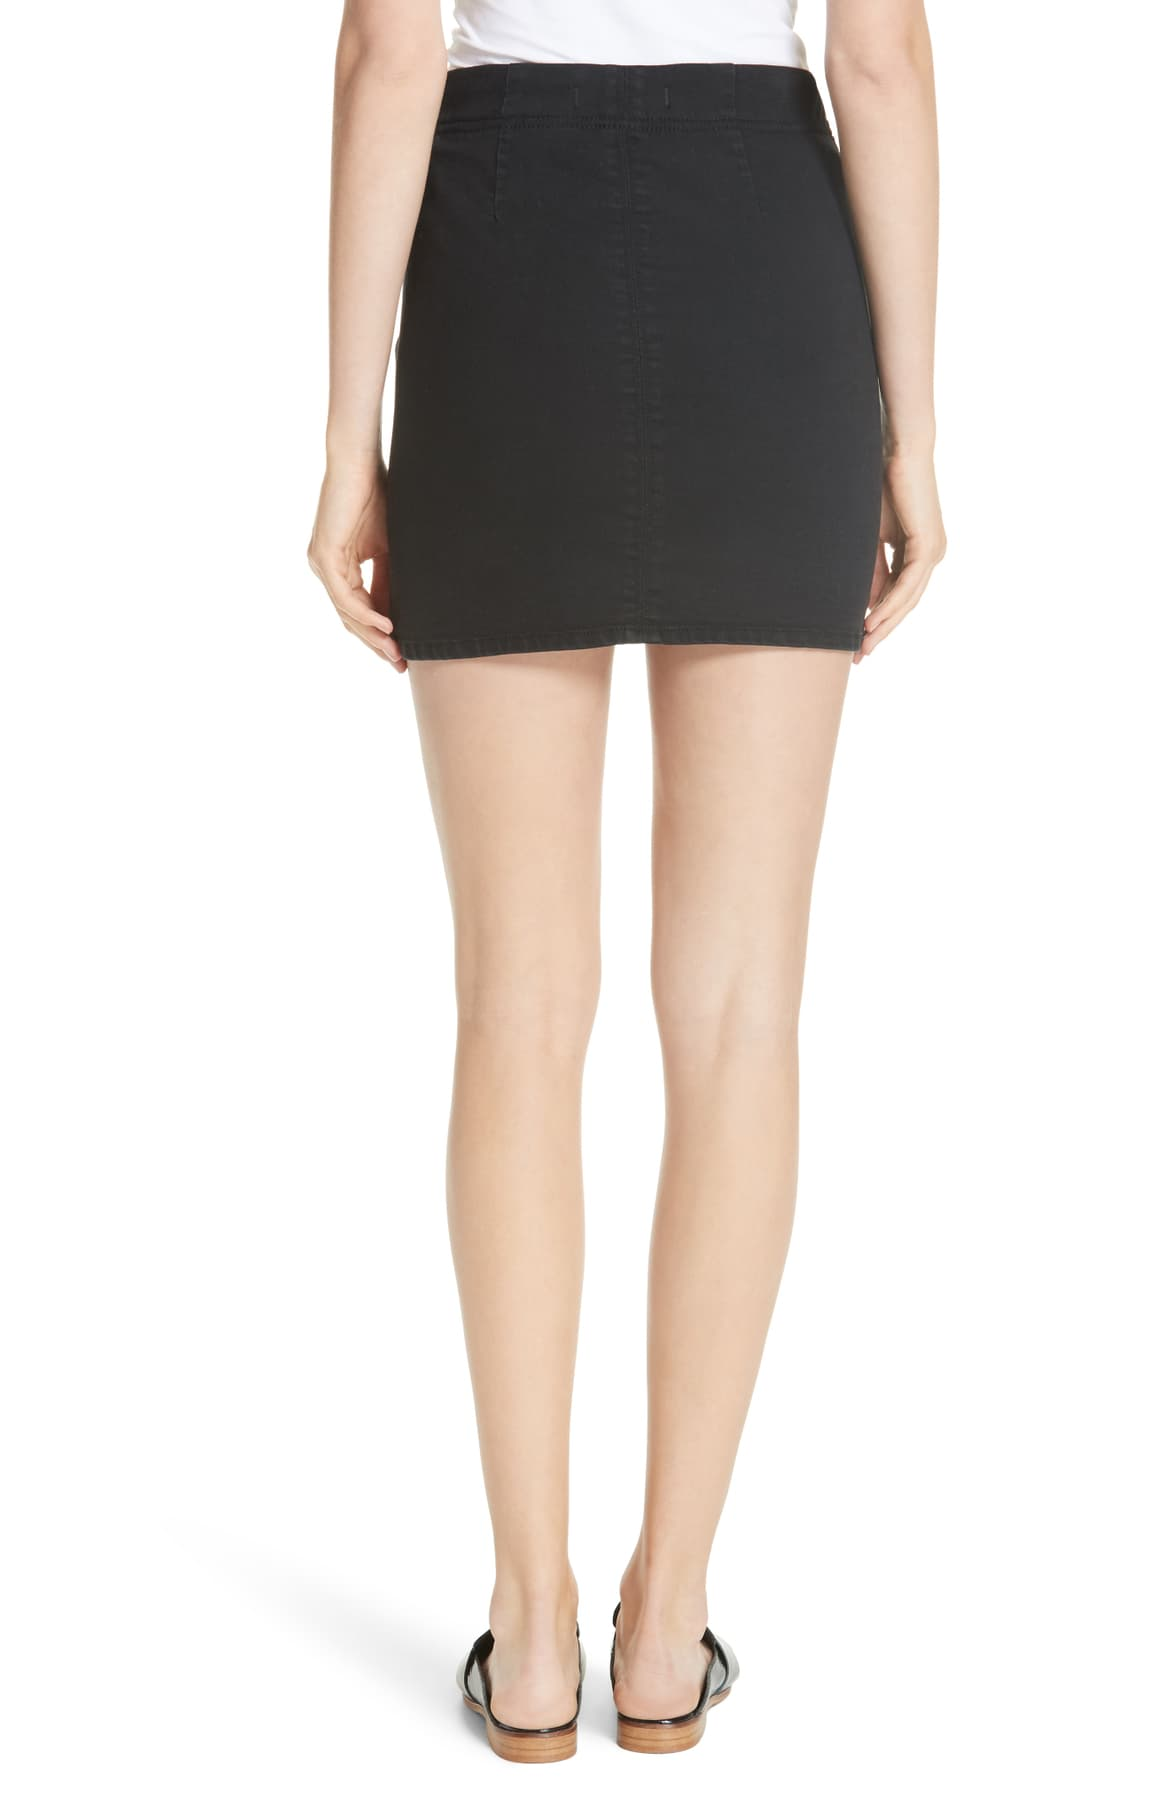 Free People Denim Mini Skirt Black L - Gear Relapse